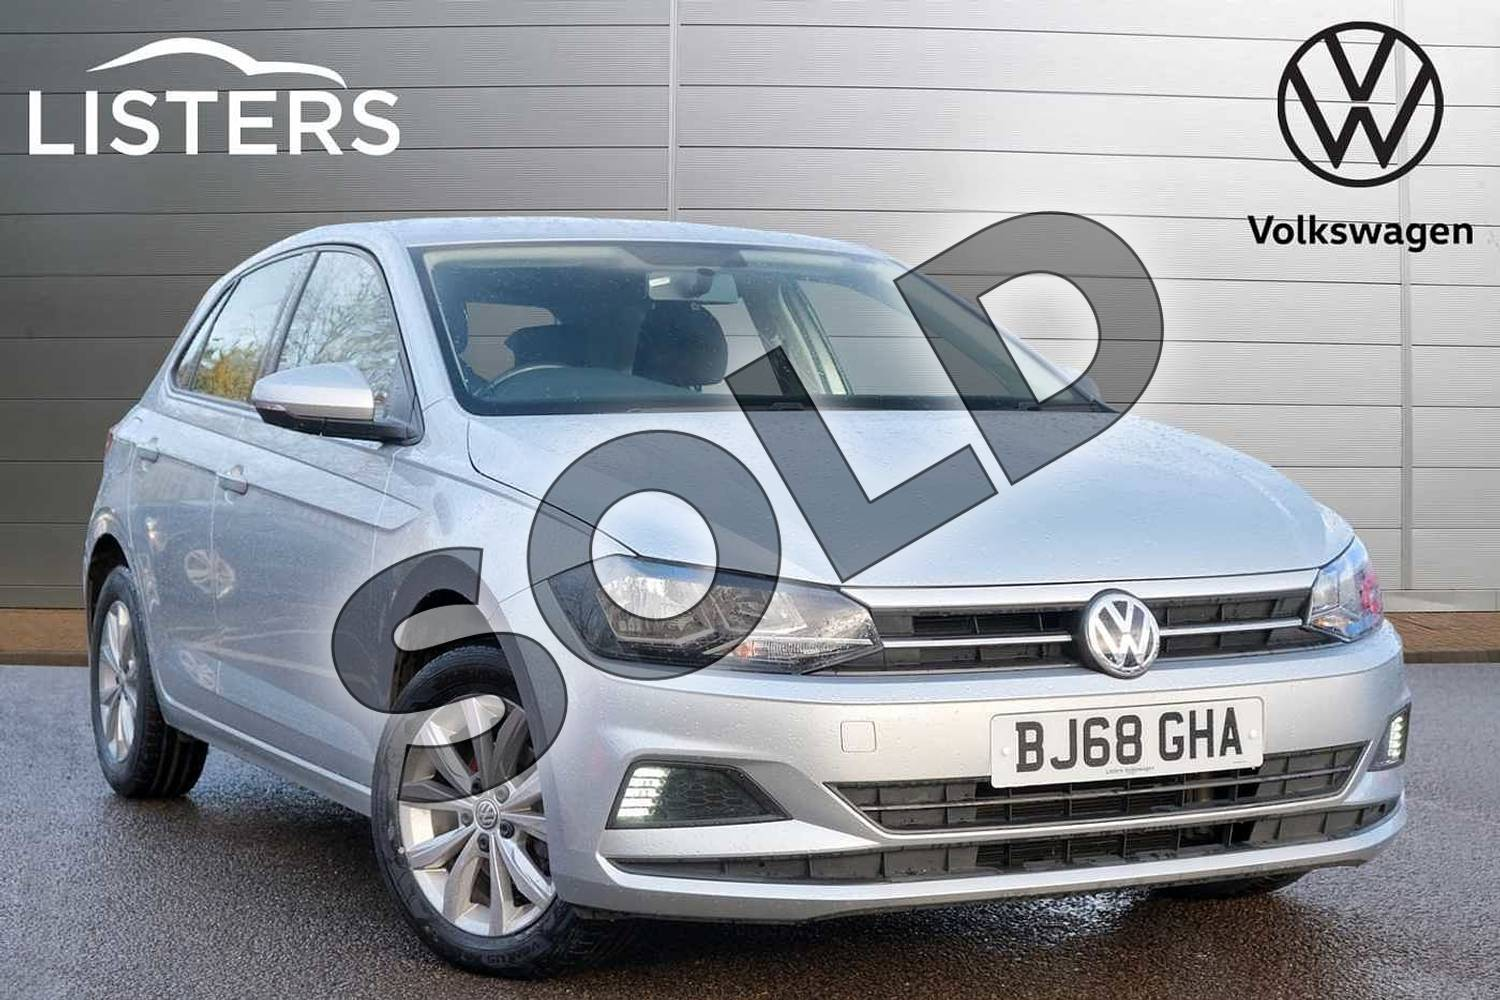 2018 Volkswagen Polo Hatchback 1.0 TSI 95 SE 5dr in Reflex Silver at Listers Volkswagen Leamington Spa